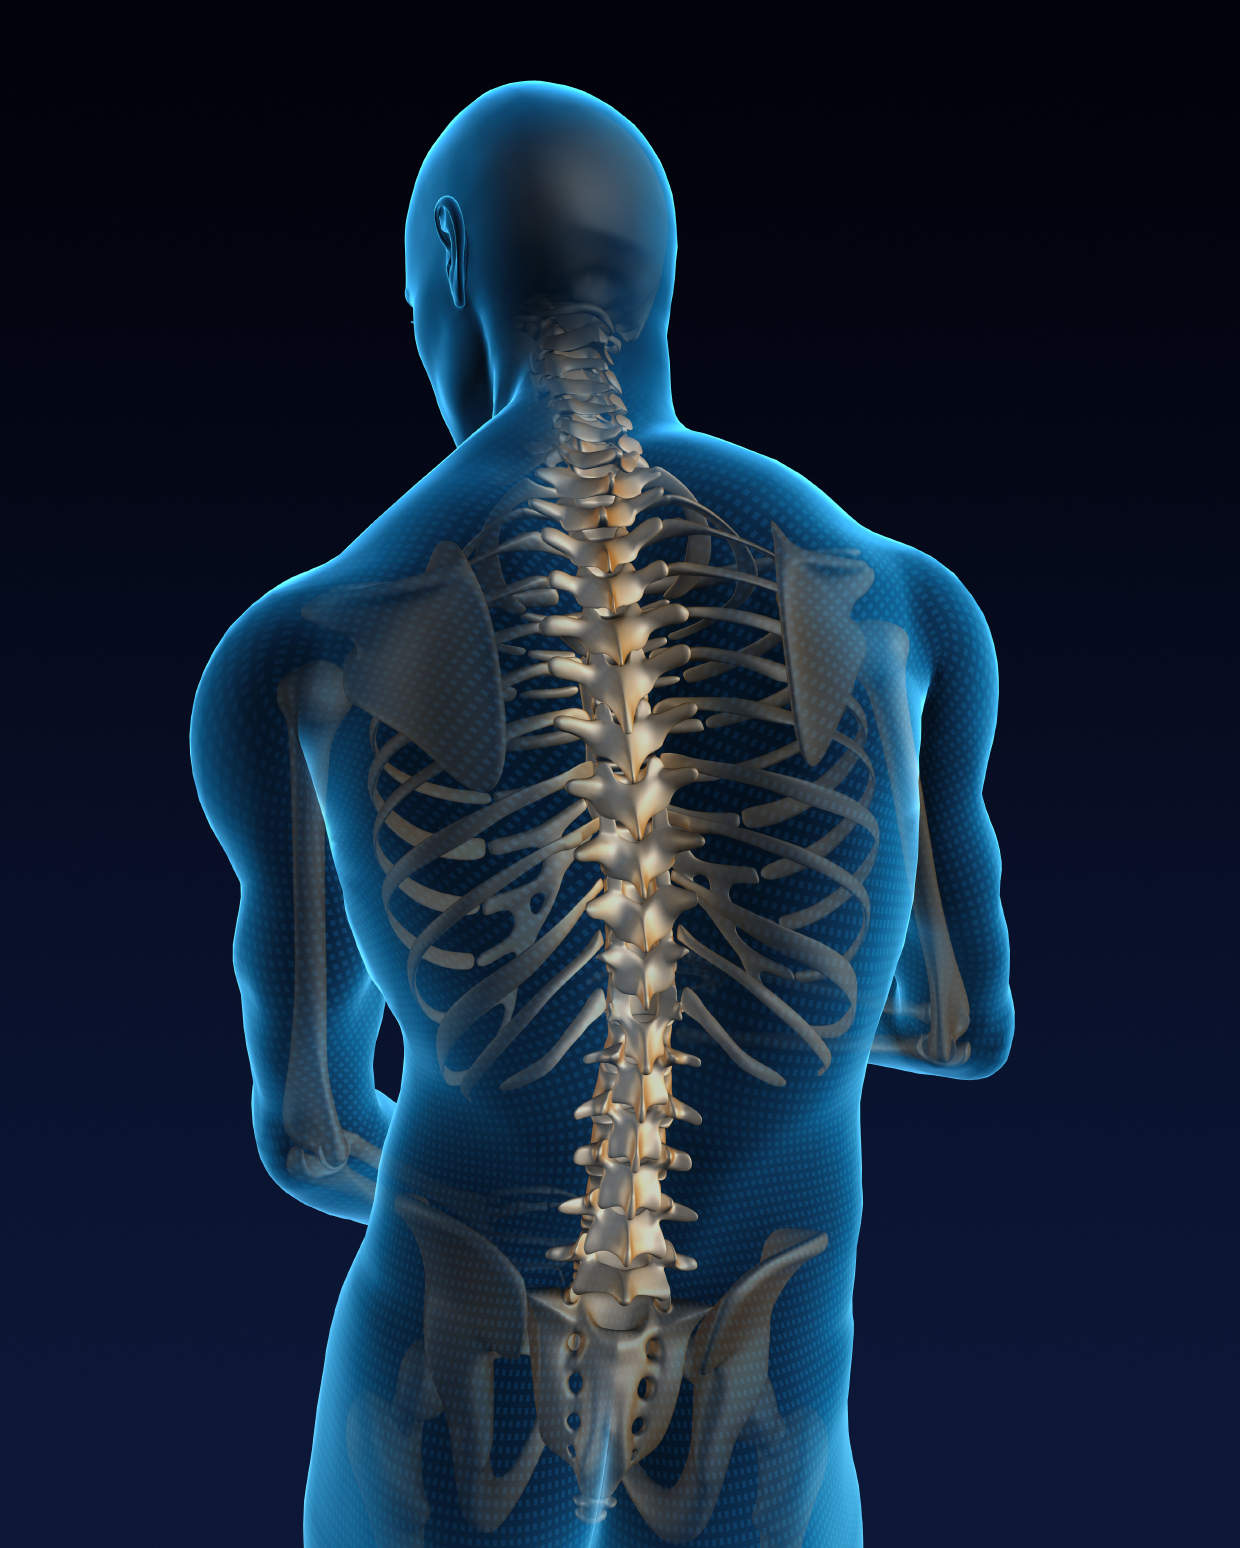 Spine Surgical Treatment, Spine Specialist